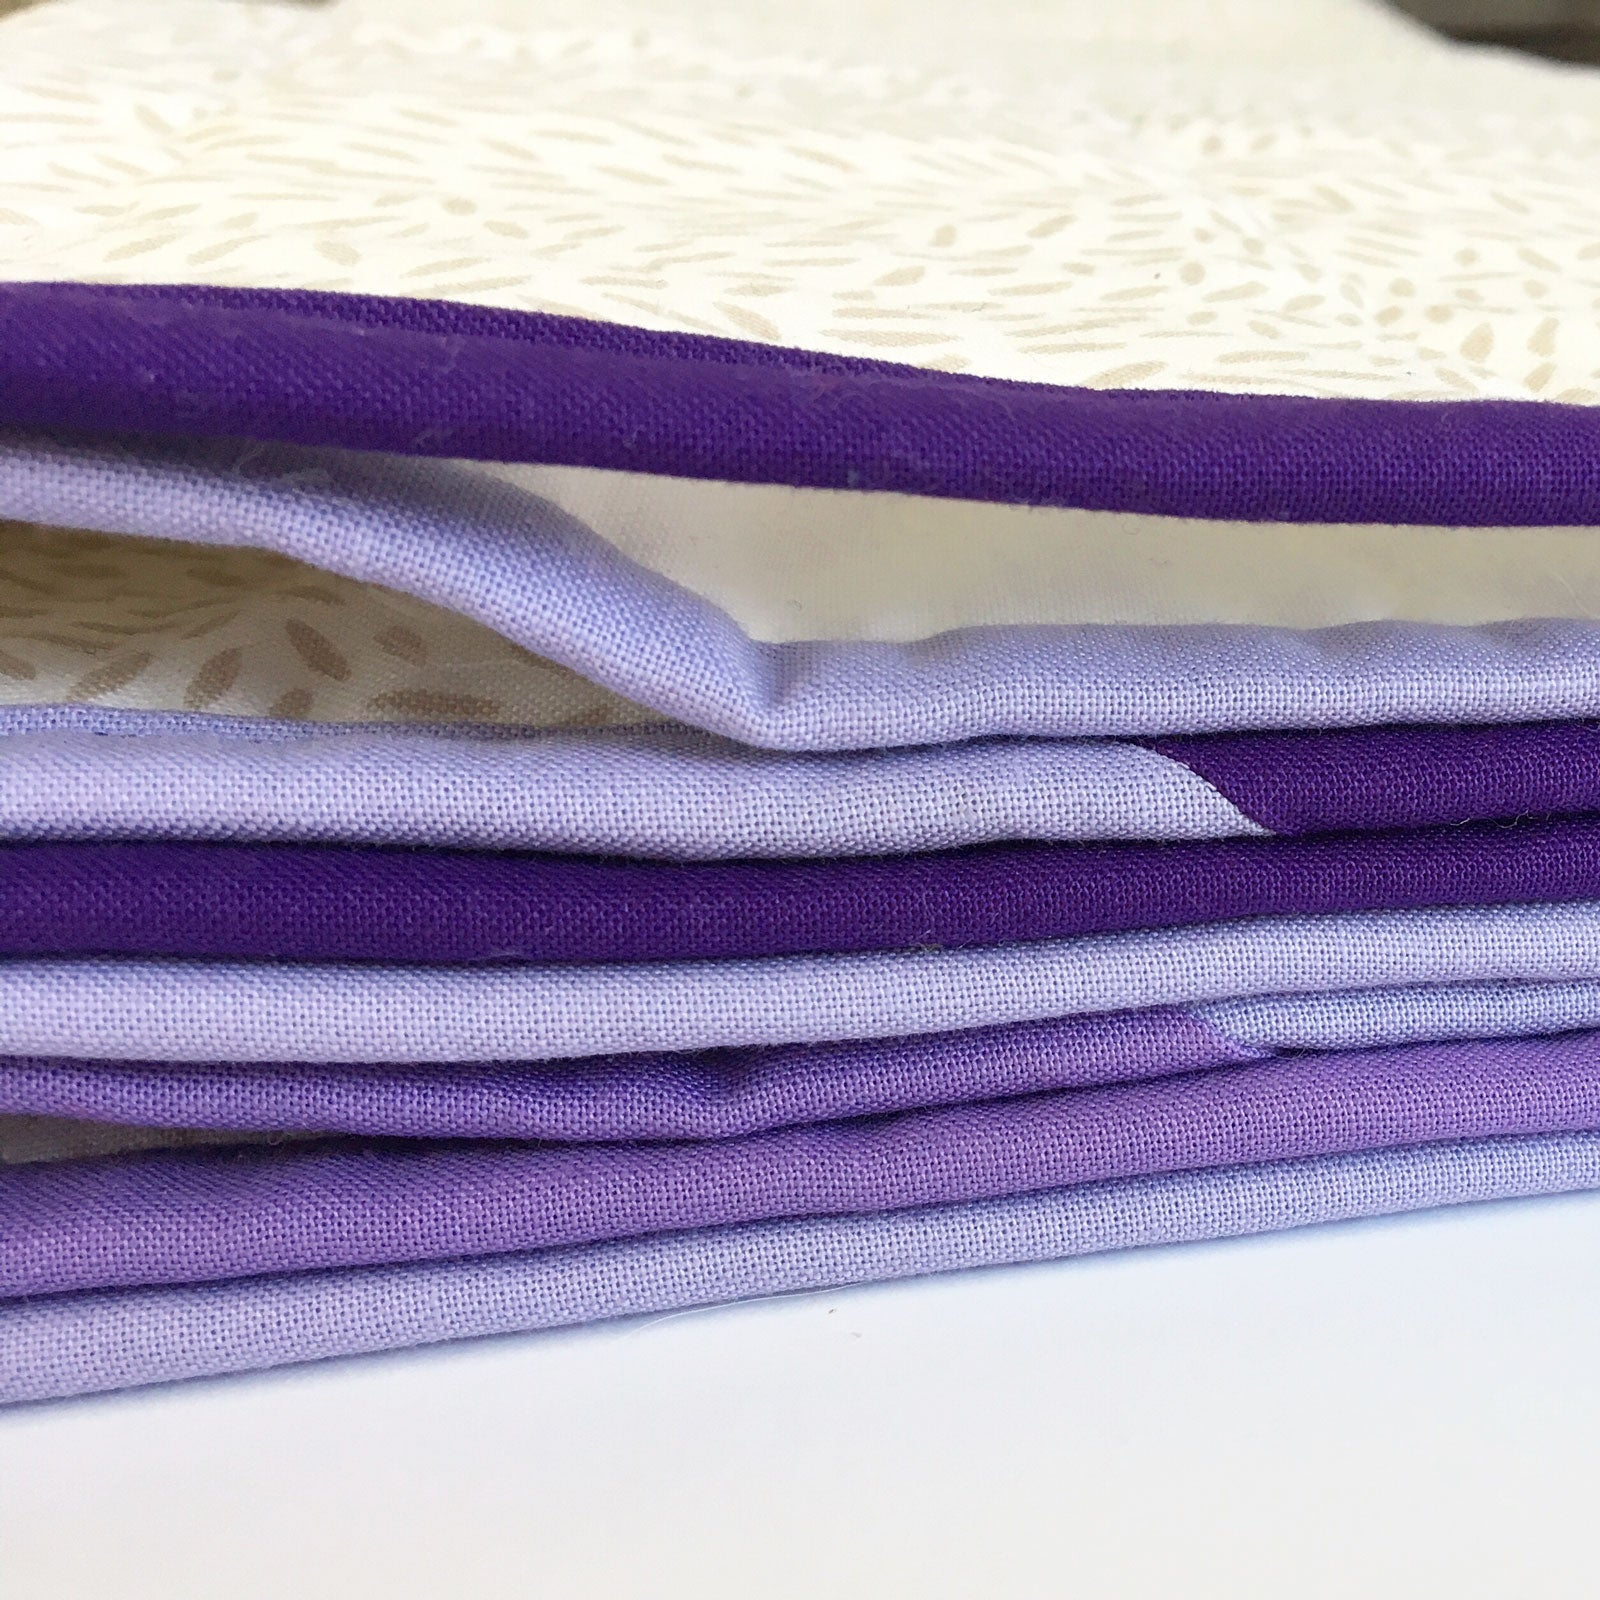 Multicolor Binding in different shades of purple